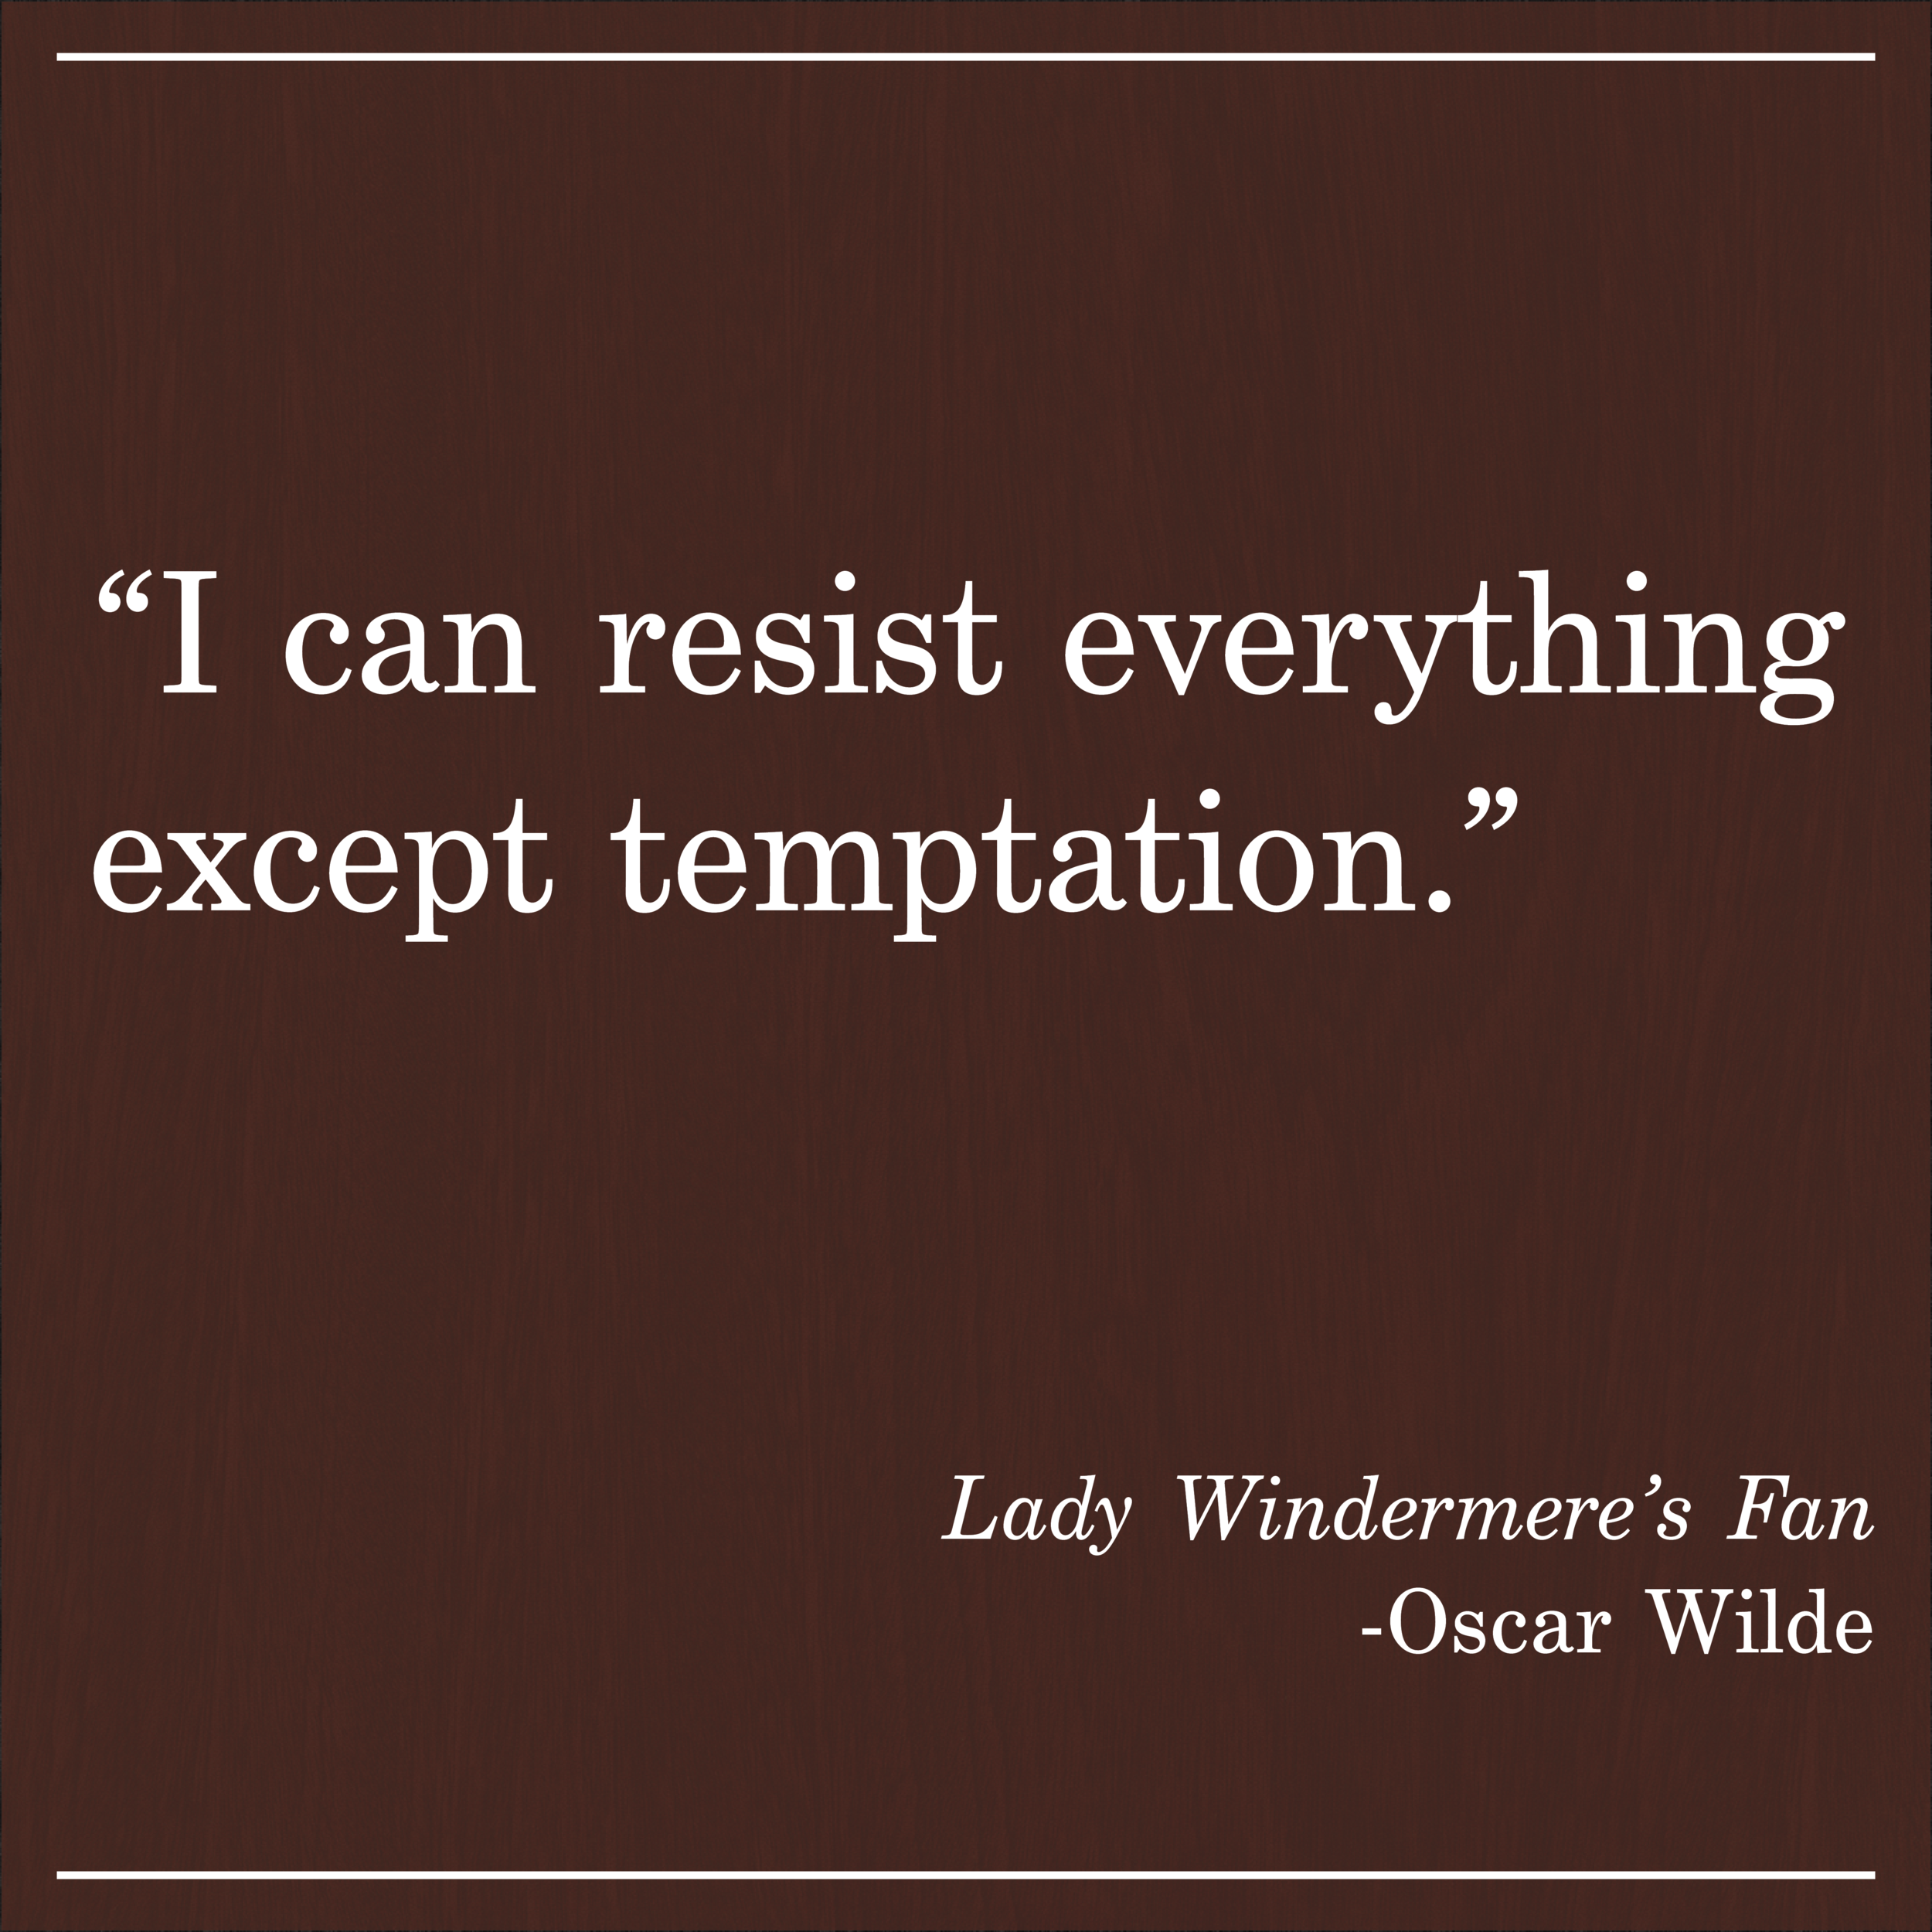 Daily Quote Lady Windermere's Fan by Oscar Wilde